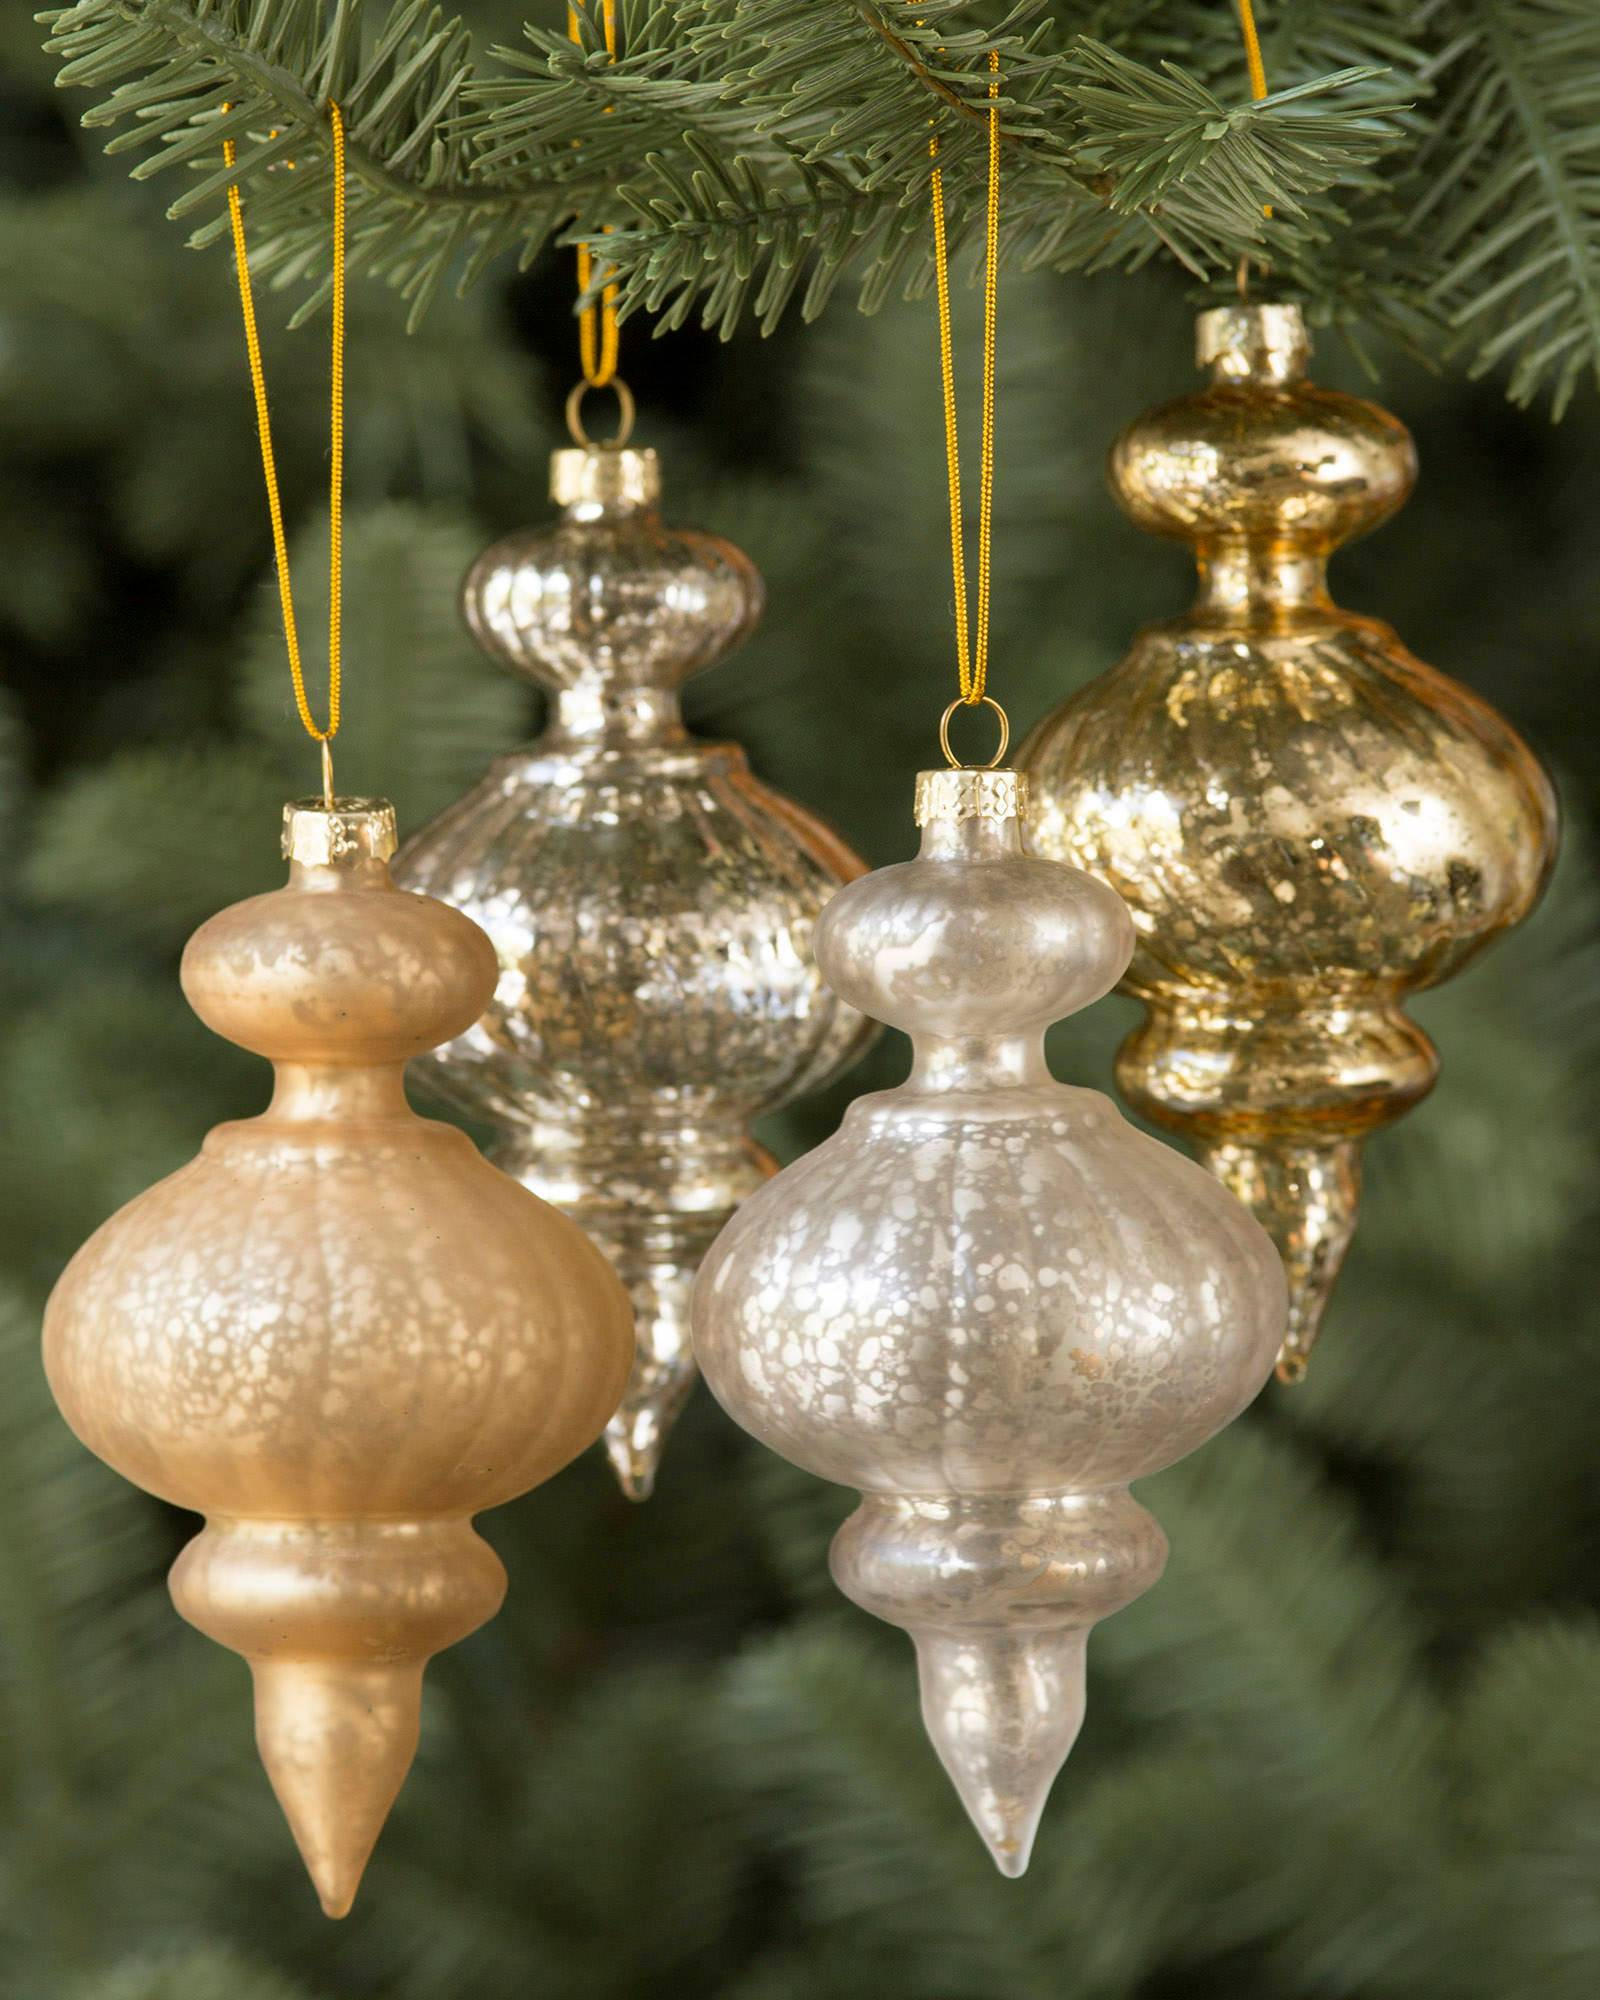 silver and gold glass ornament set alt - Glass Christmas Bulbs For Decorating